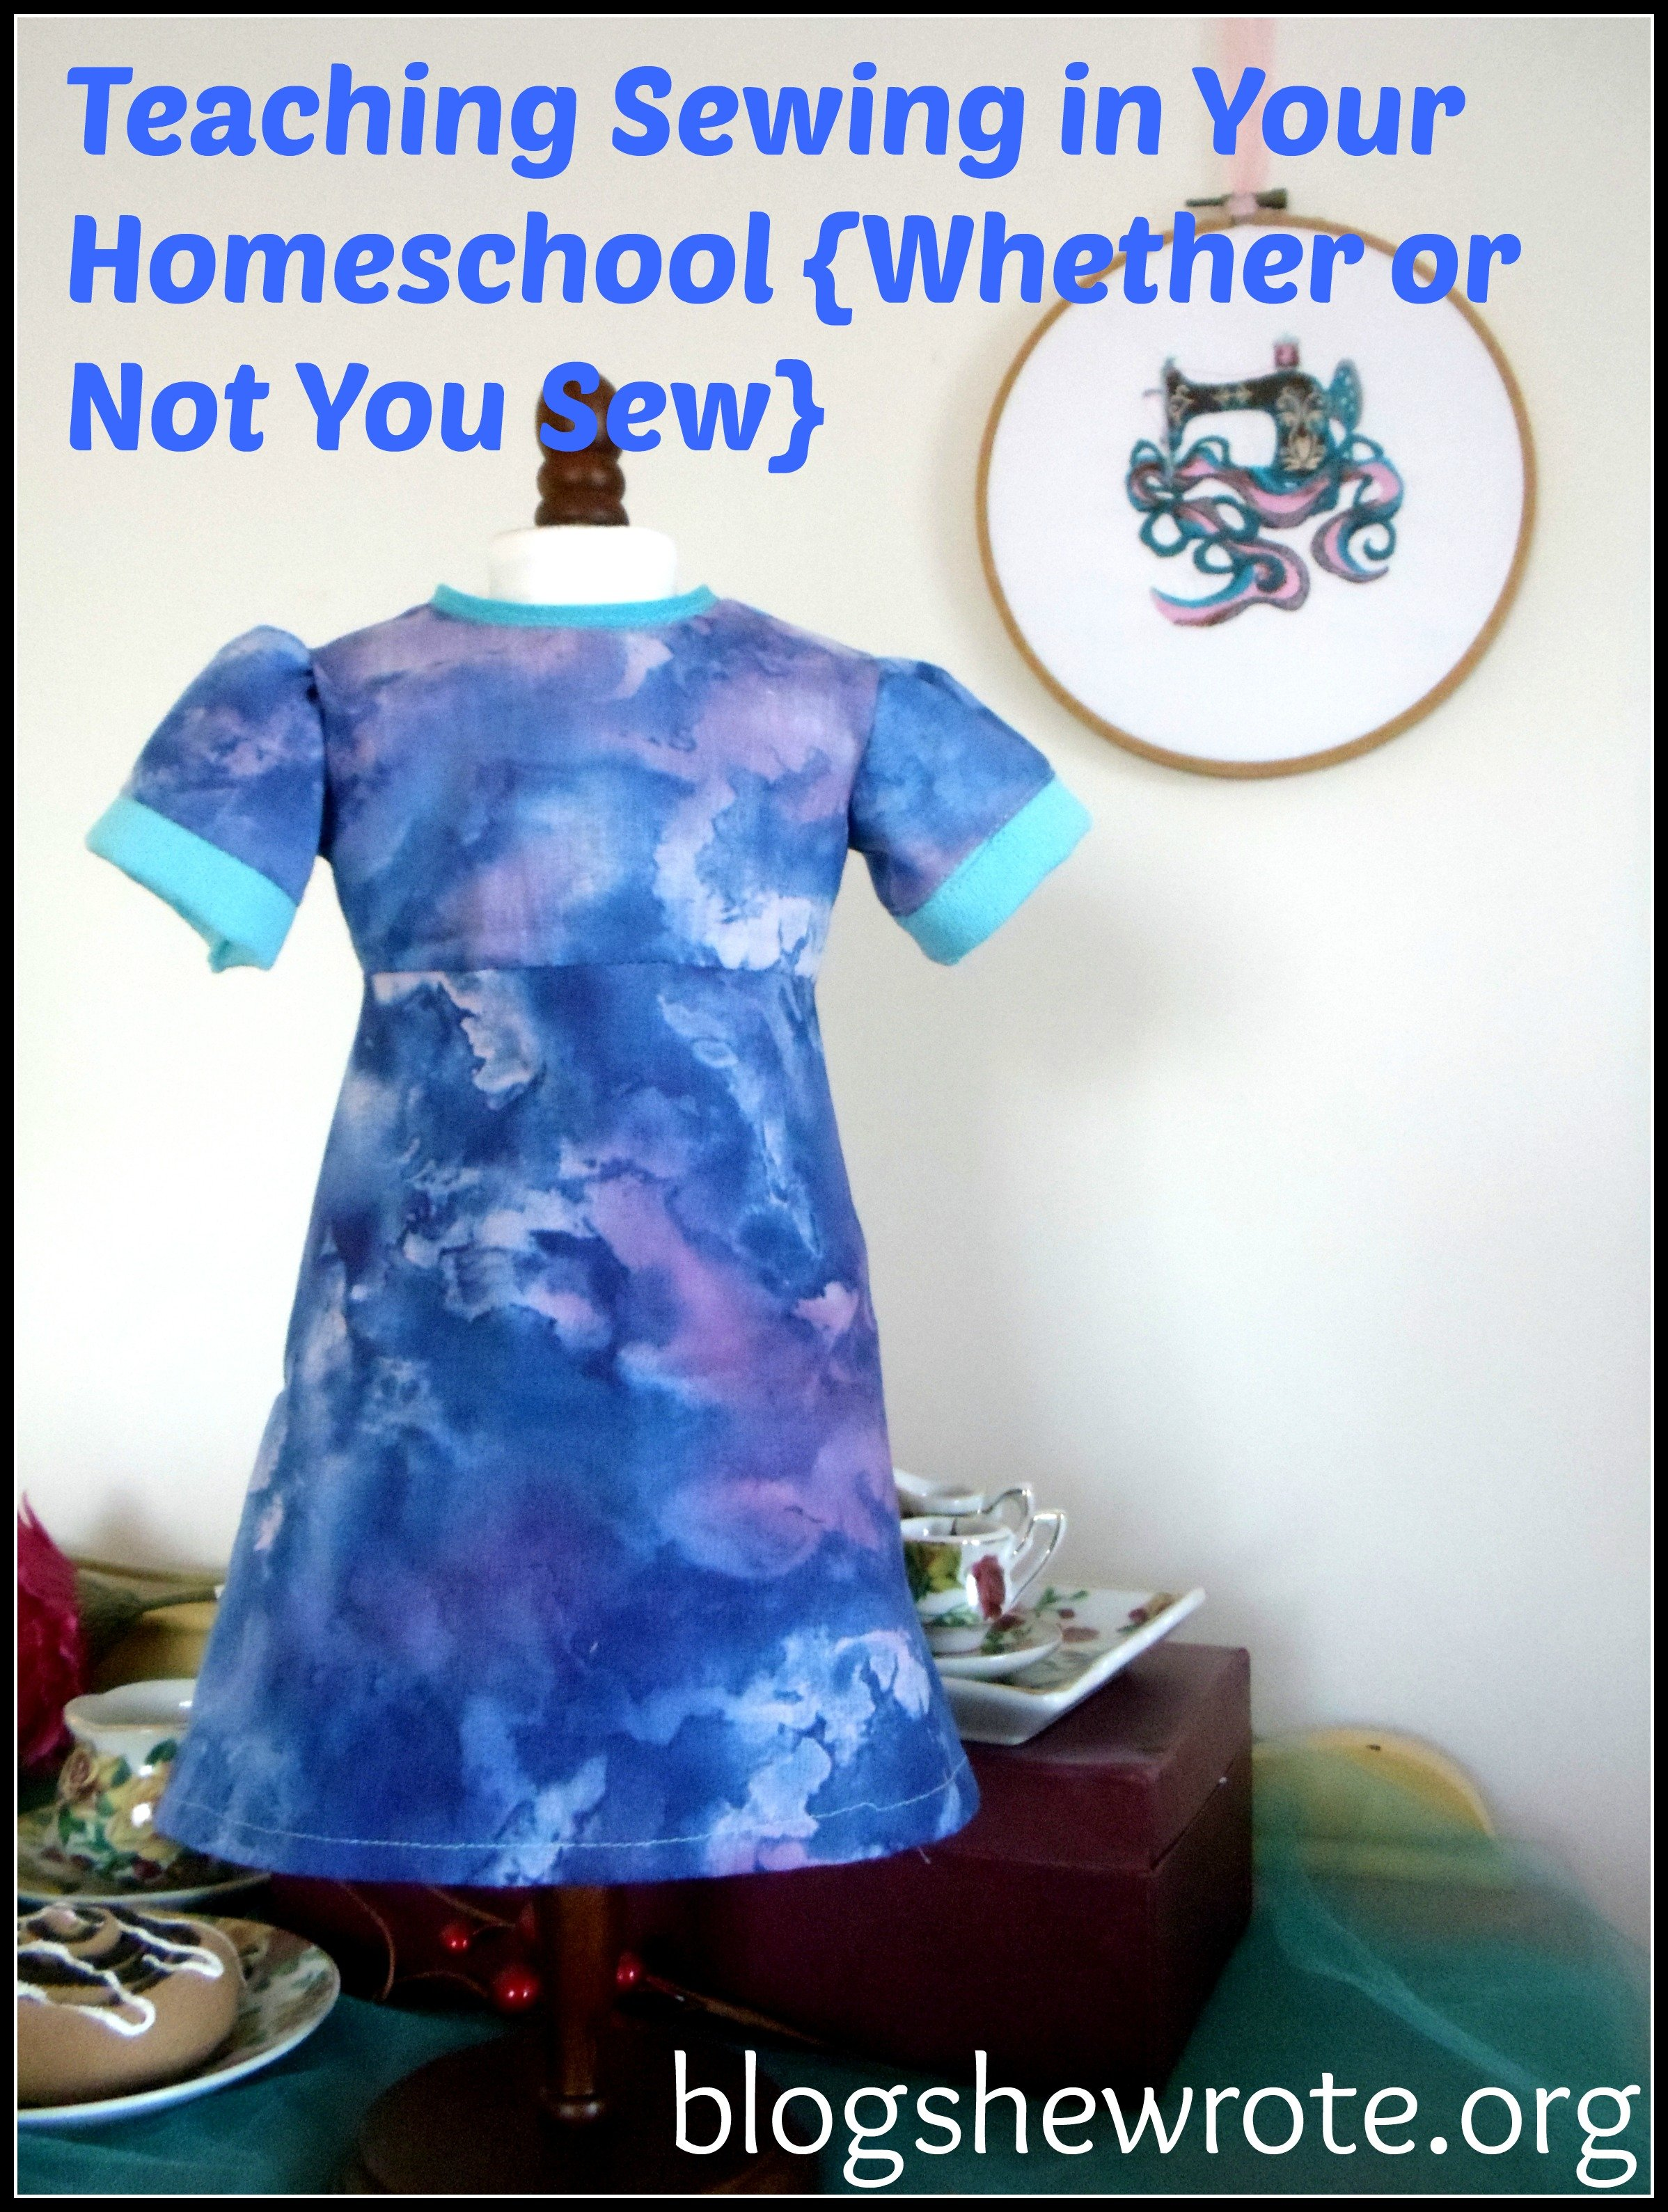 Blog, She Wrote: Teaching Sewing in Your Homeschool {Whether or Not You Sew}